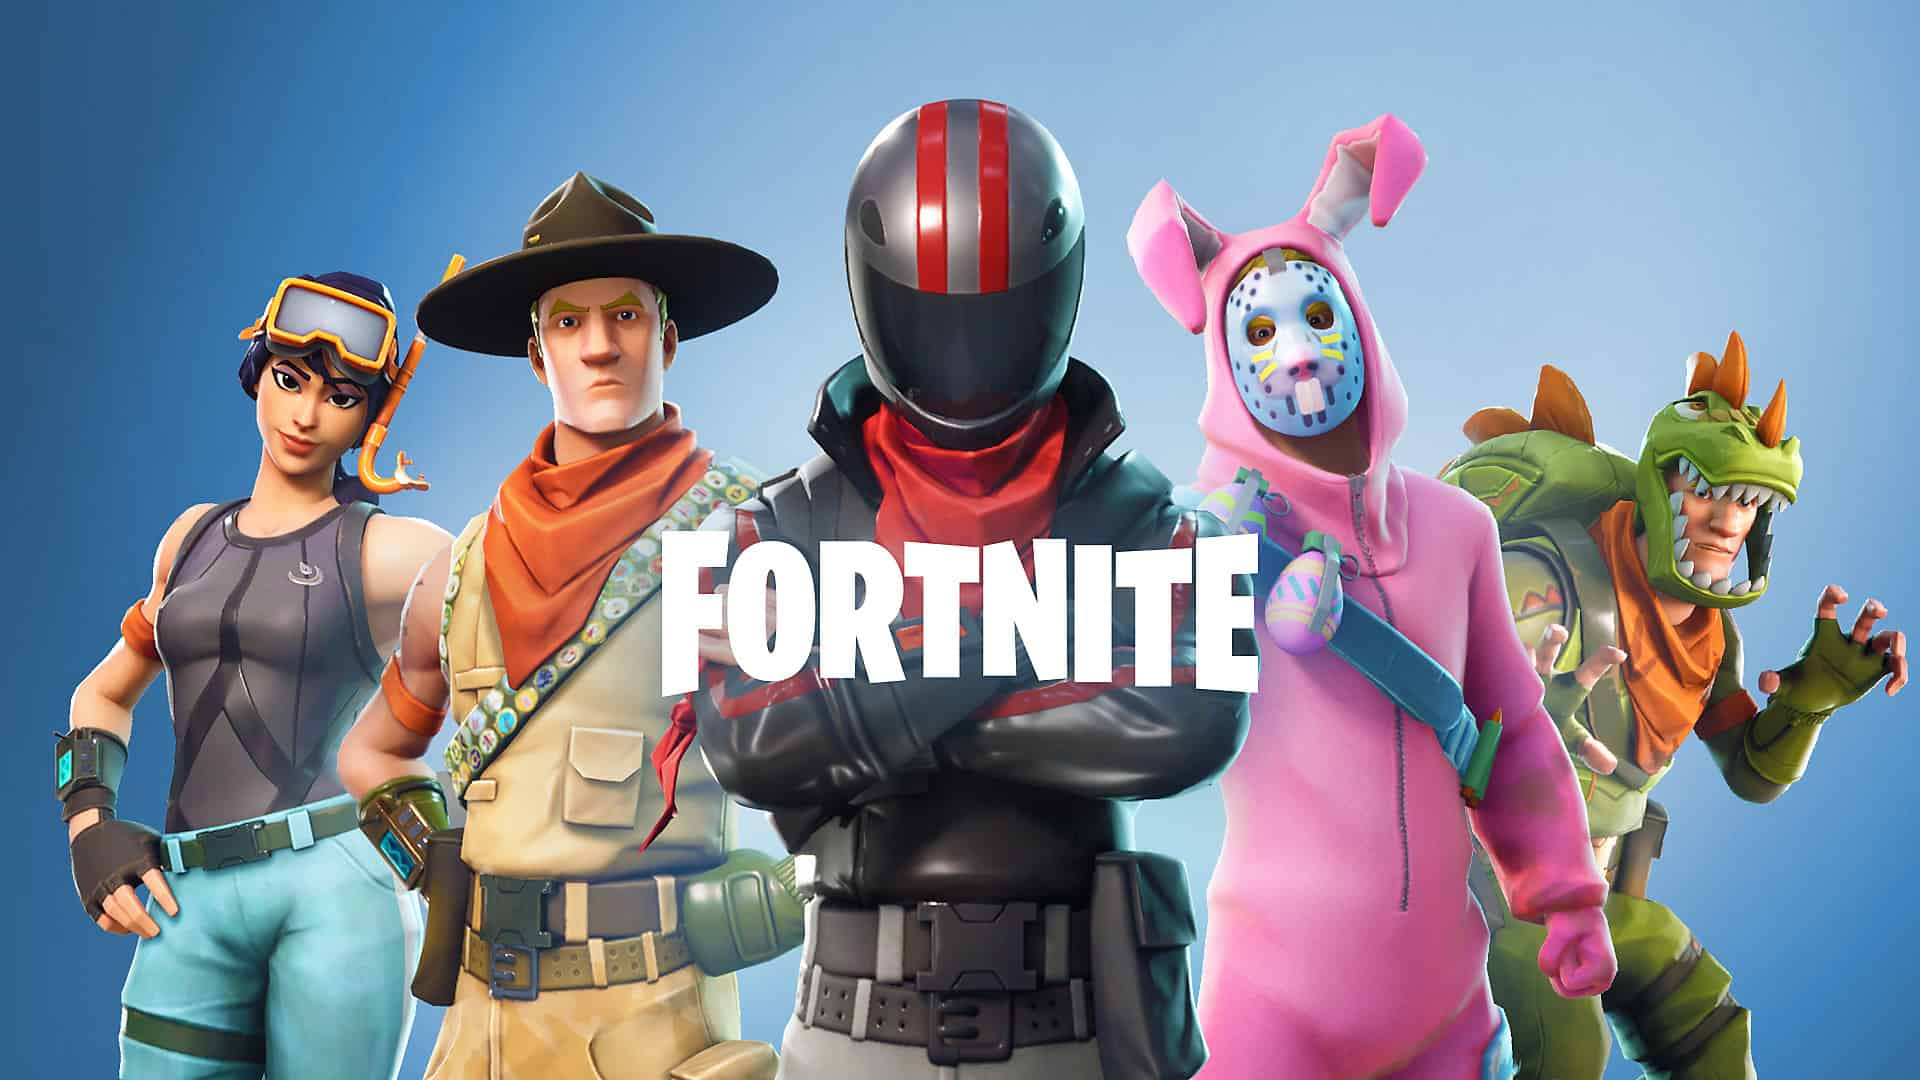 Summer 2018 Targeted for Fortnite Android Release Date